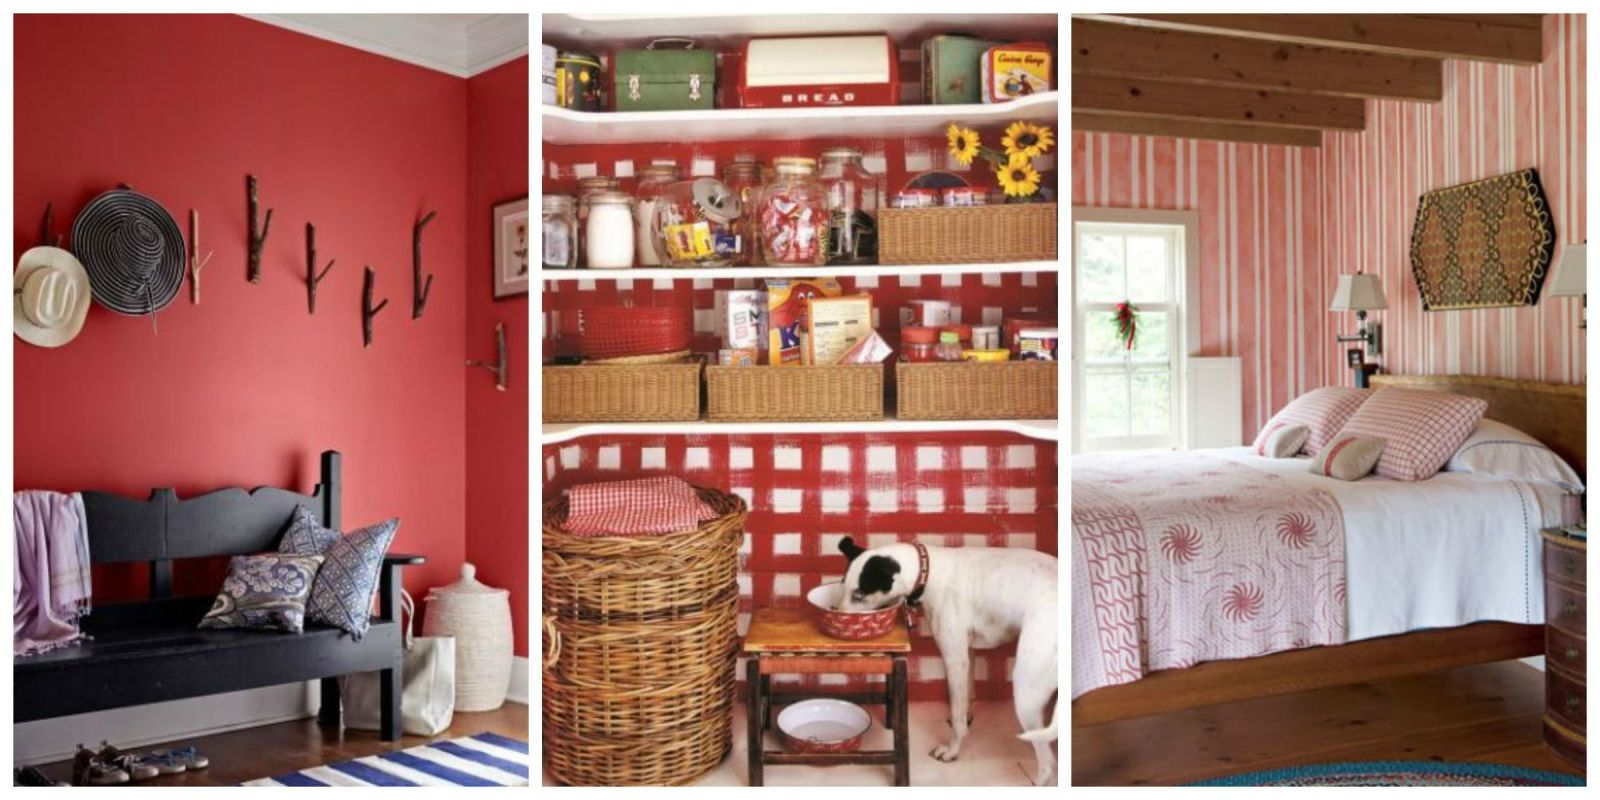 Bedroom Decorating Ideas Red Walls decorating with red - ideas for red rooms and home decor